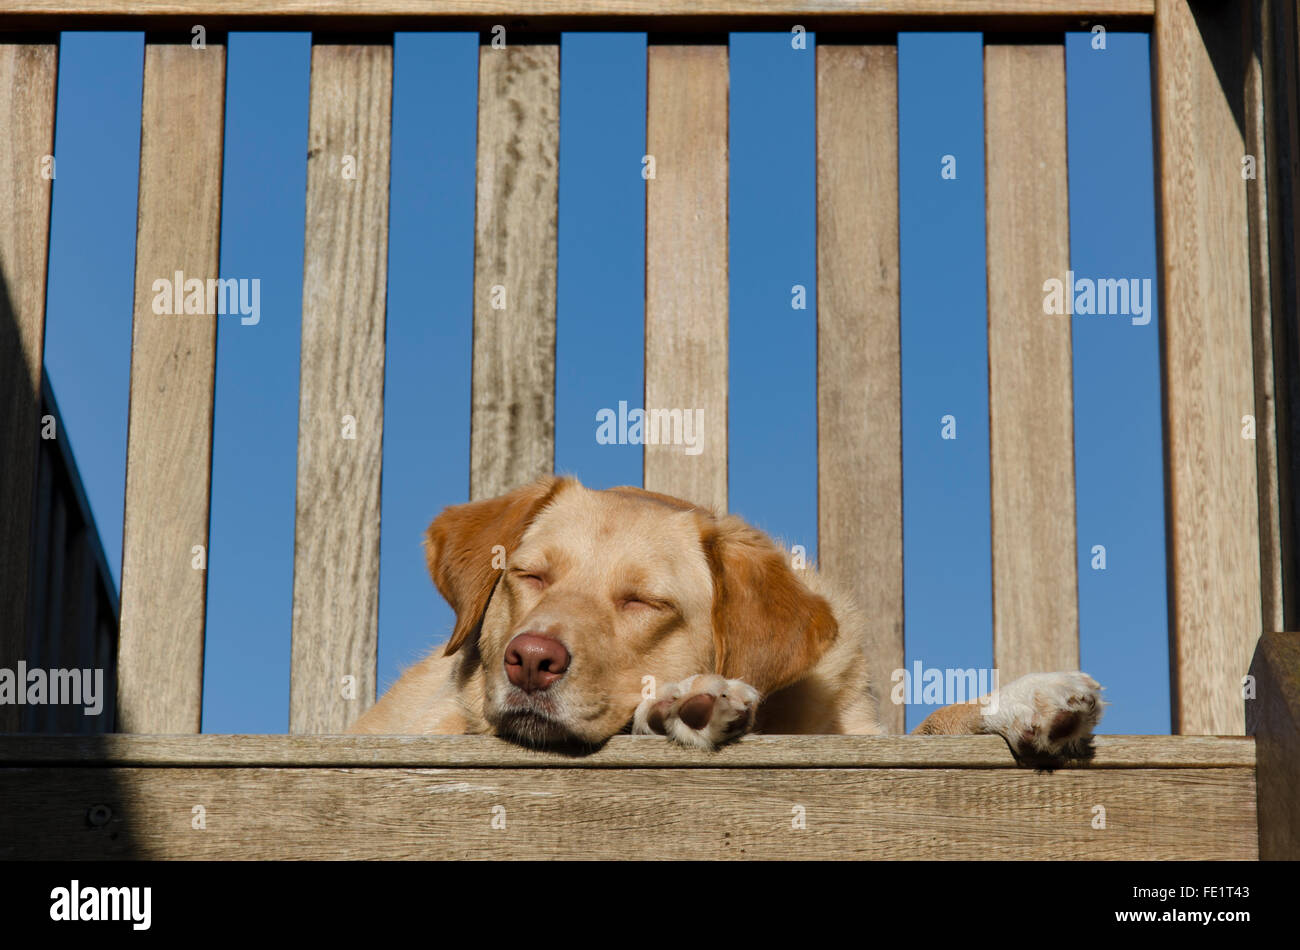 A sleepy golden haired Labrador cross dog lying on a timber deck - Stock Image